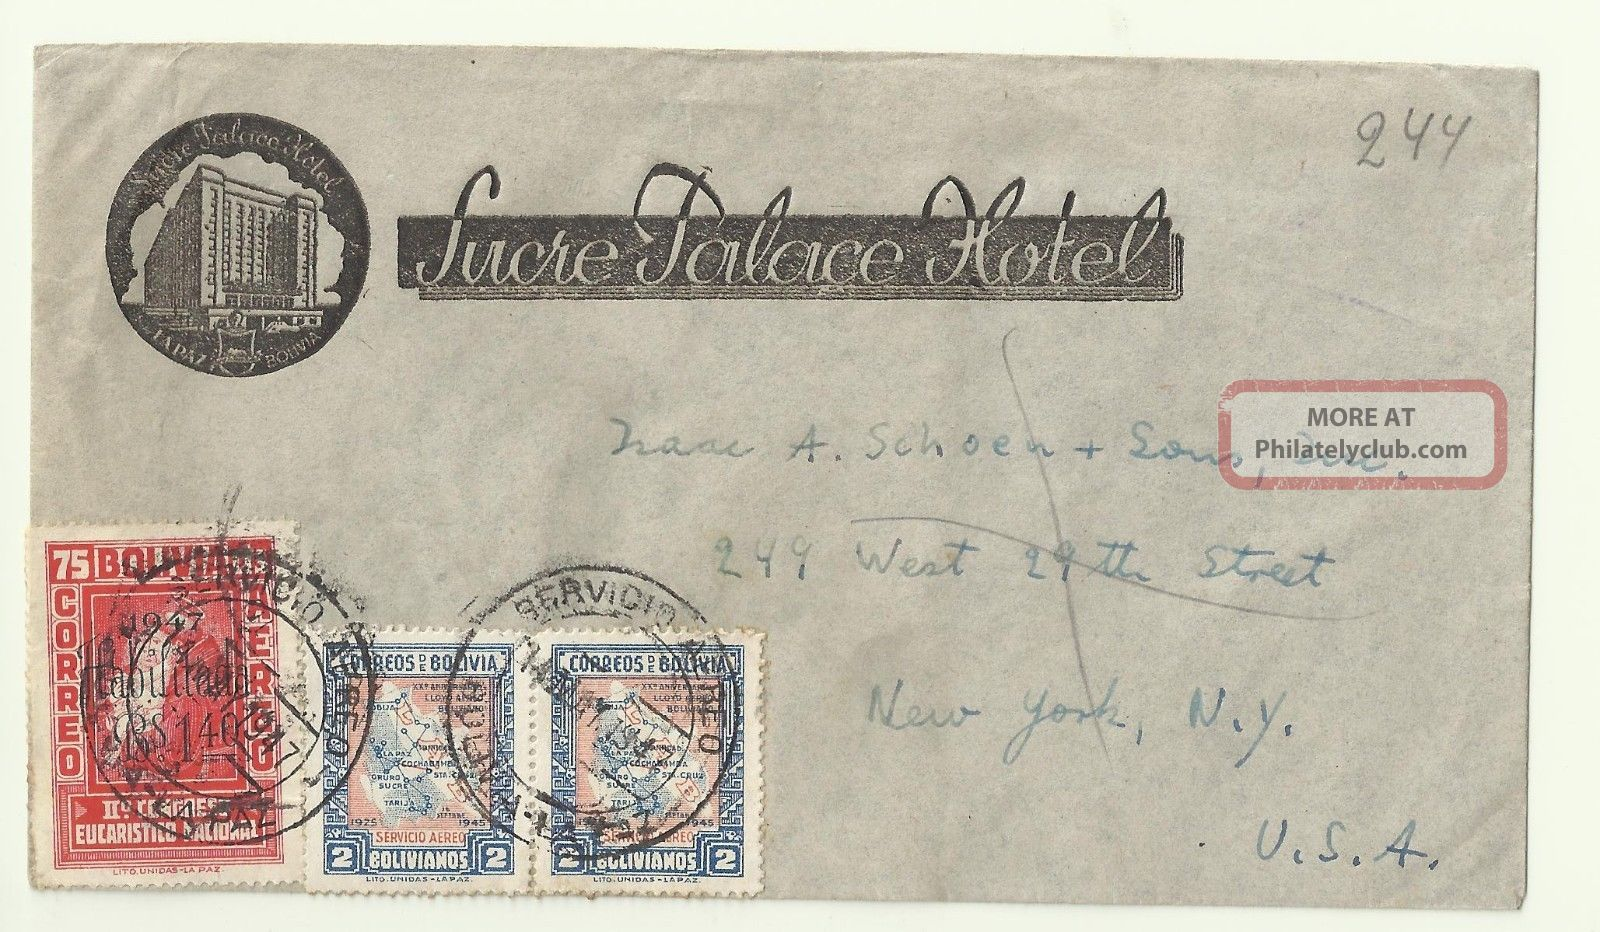 1947 La Paz Sucre Palace Hotel Bolivia Postal Cover Correo Air Mail To York Worldwide photo